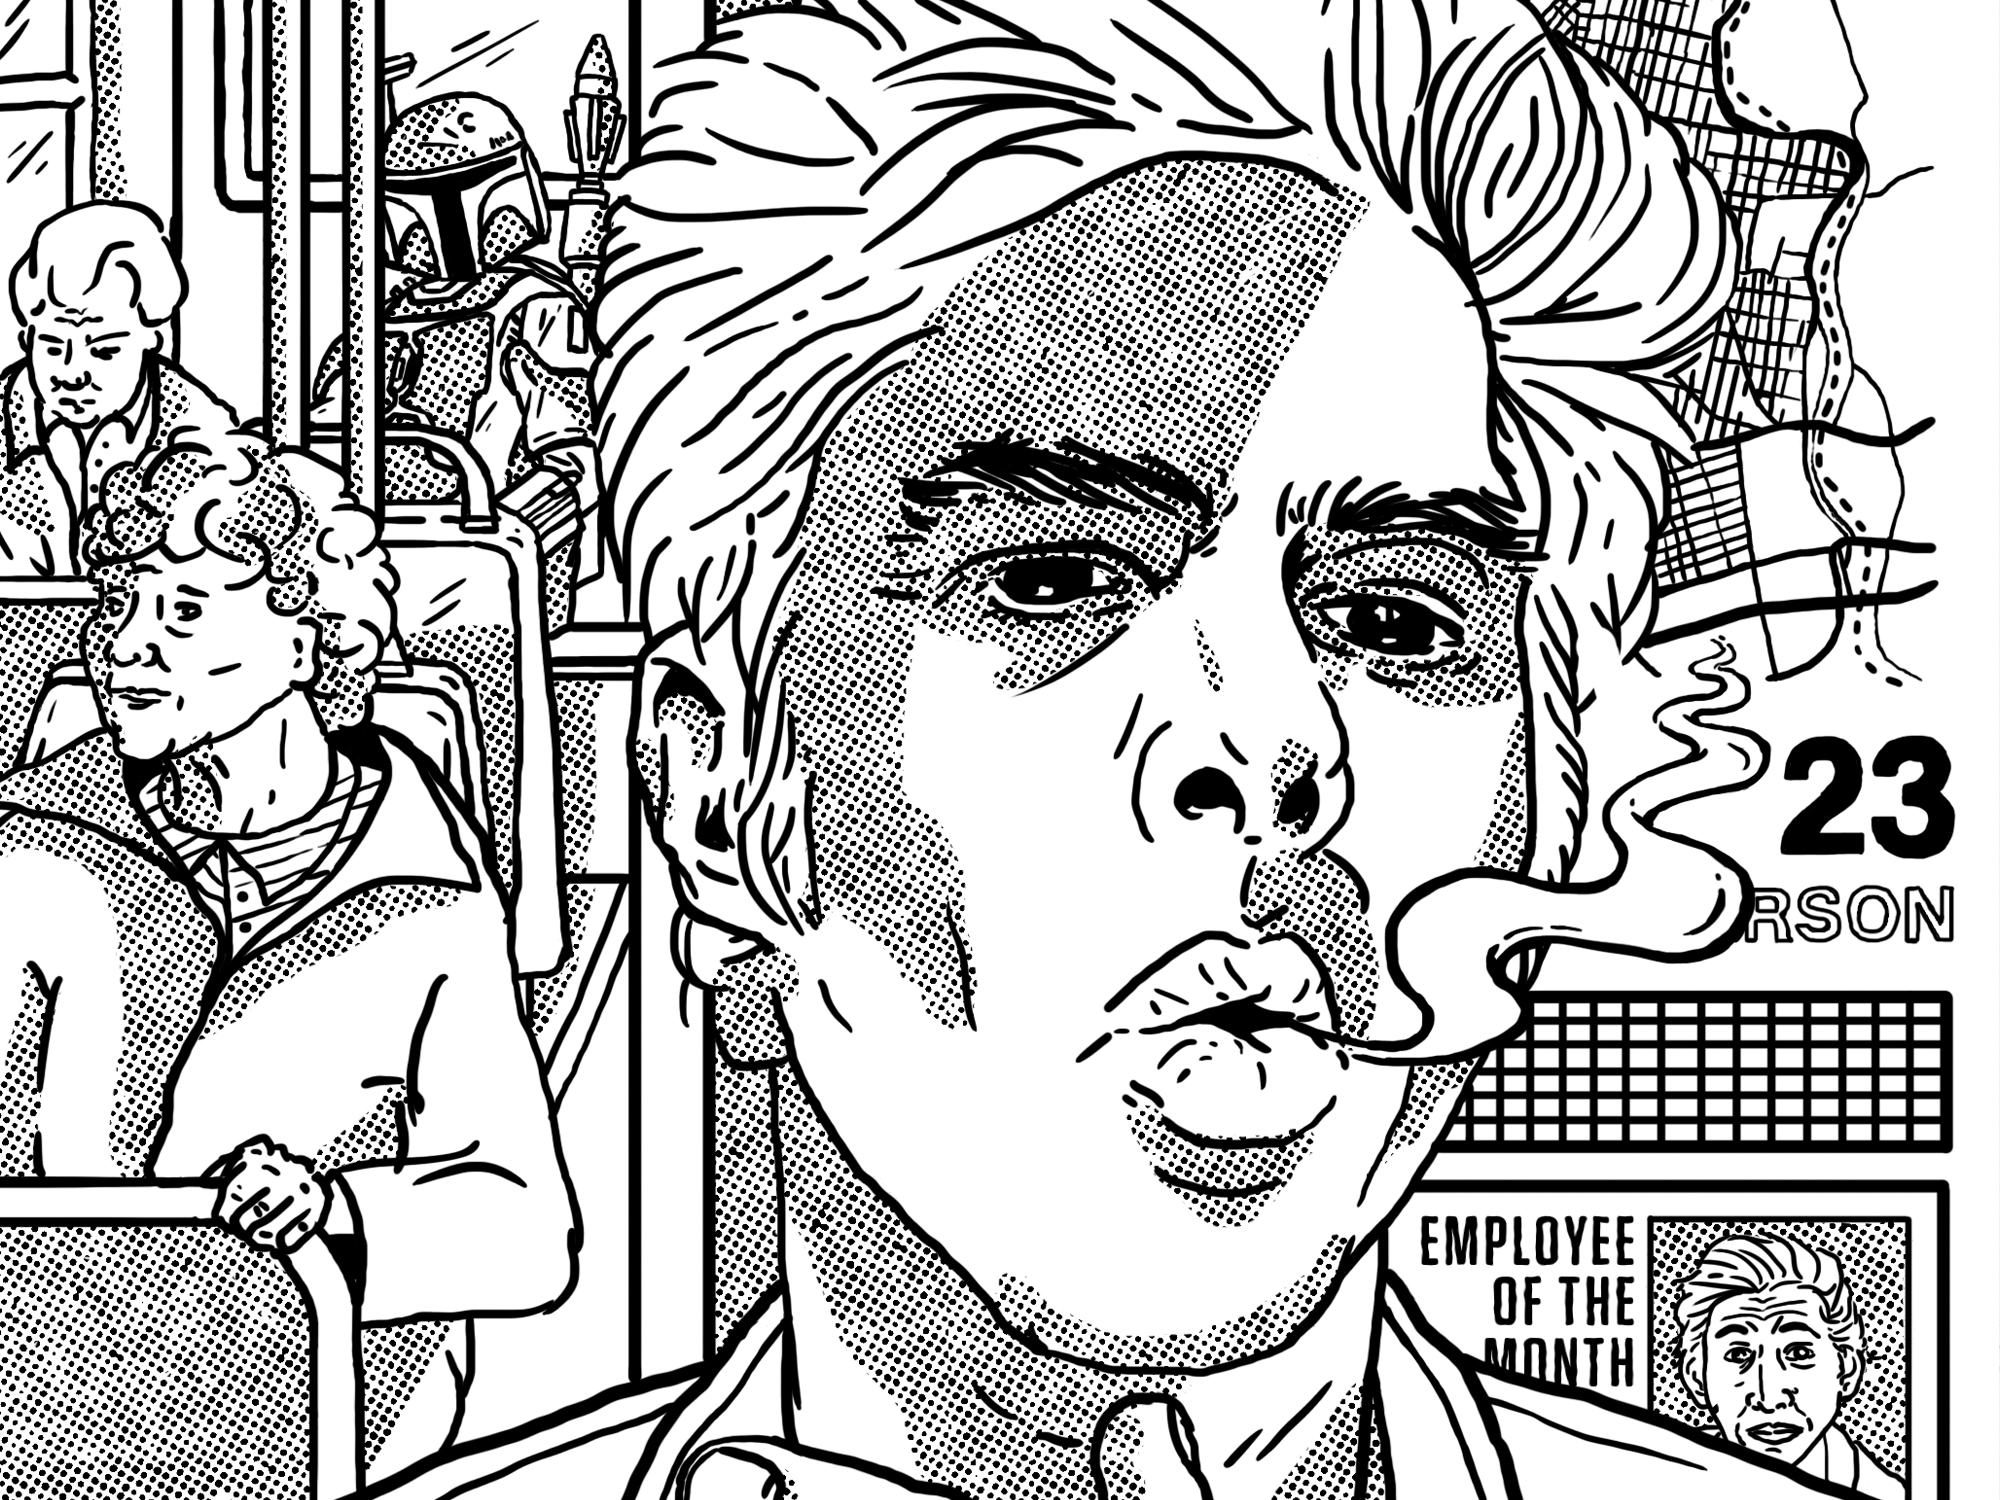 Jim Jarmusch: 'The spirit of punk is even more valuable now than ever'